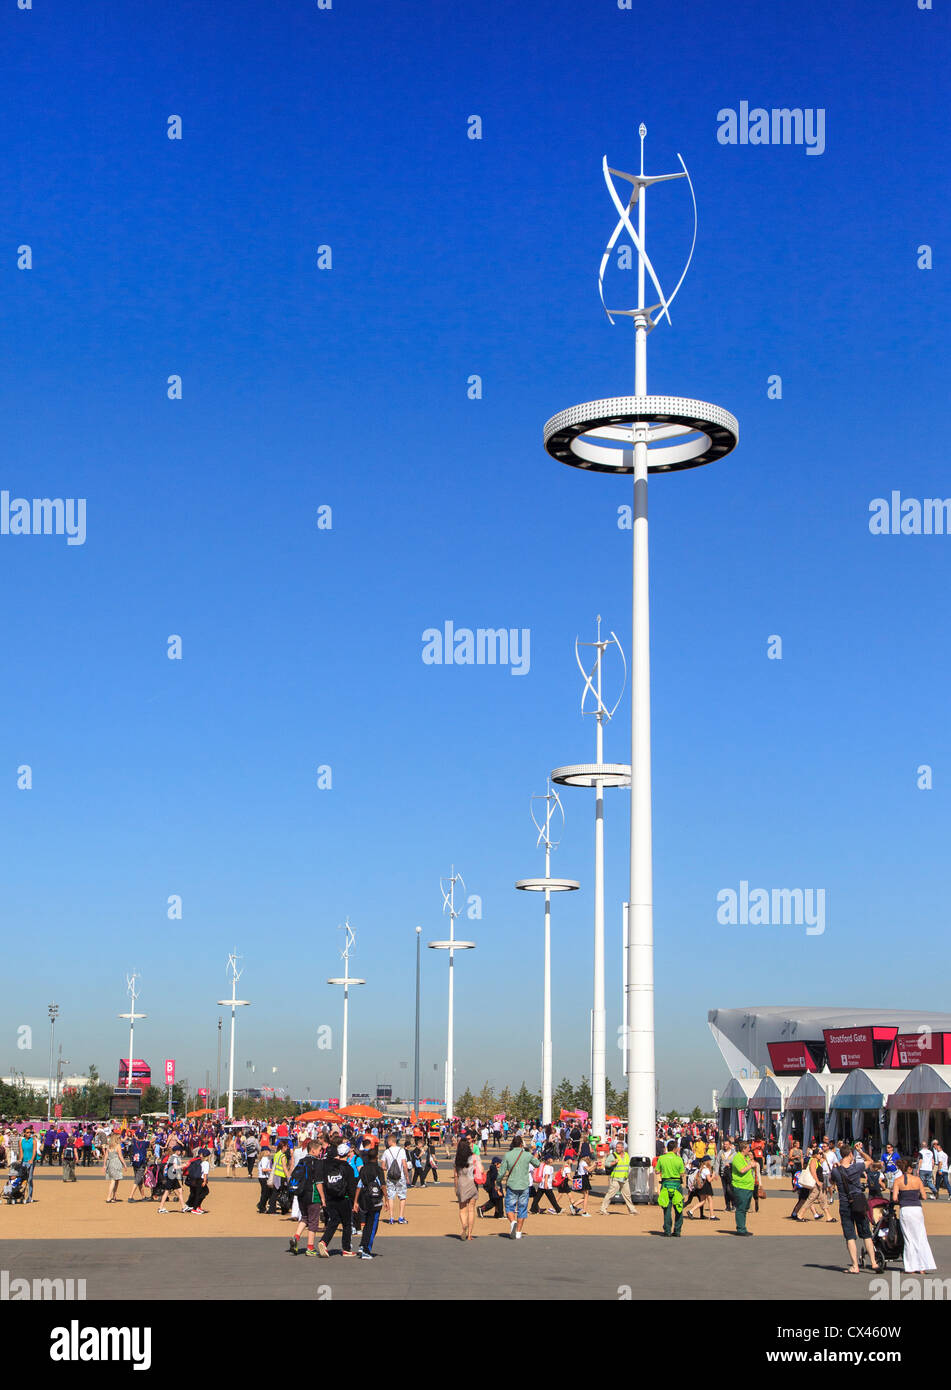 Wind turbines in the Olympic Park London - Stock Image